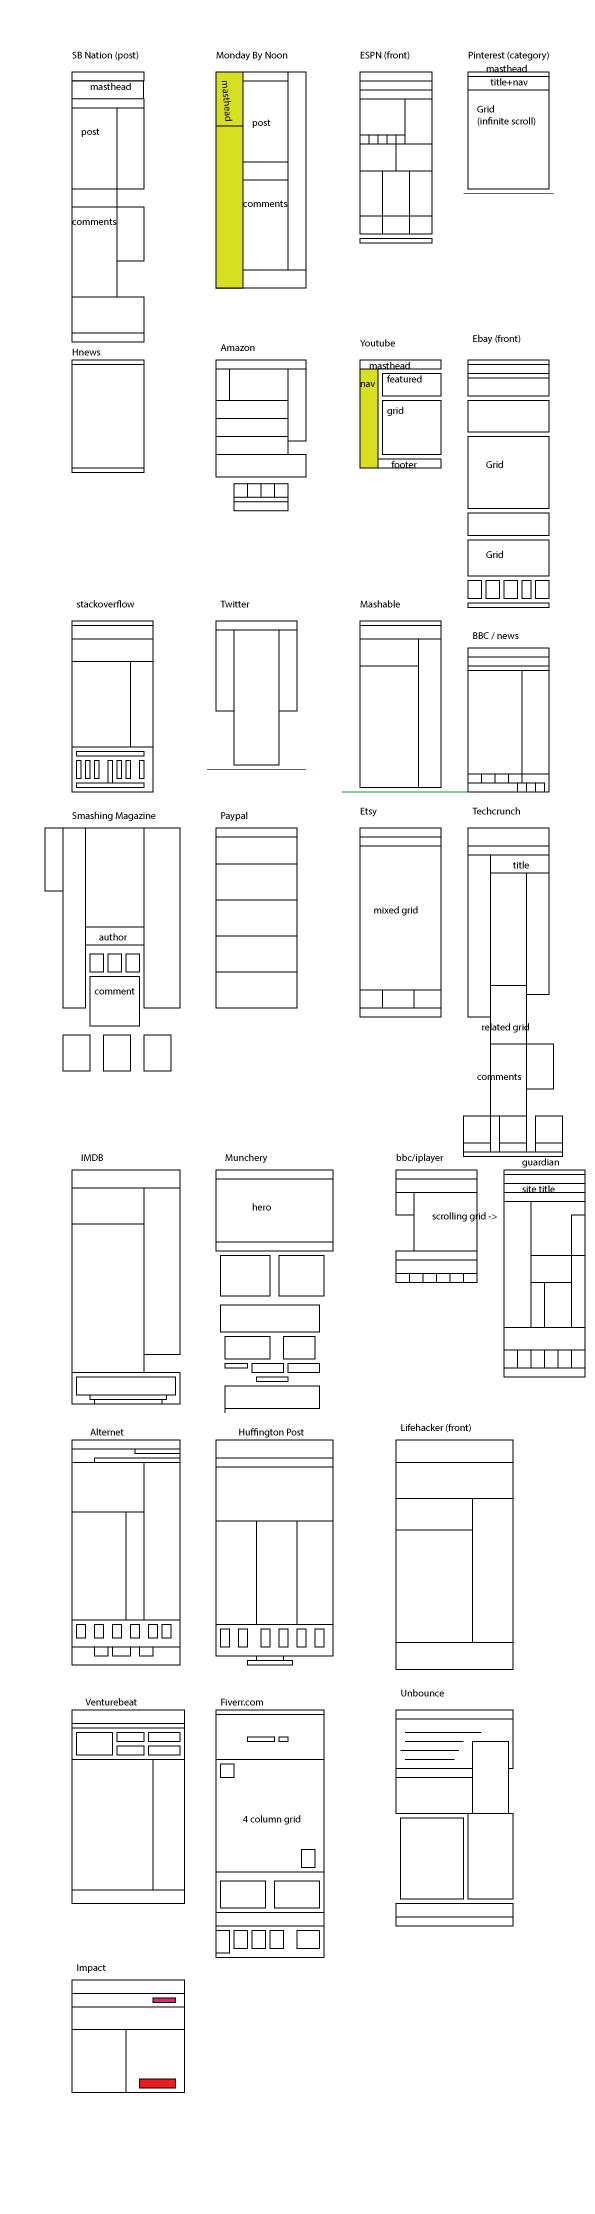 layout-variations-on-the-web